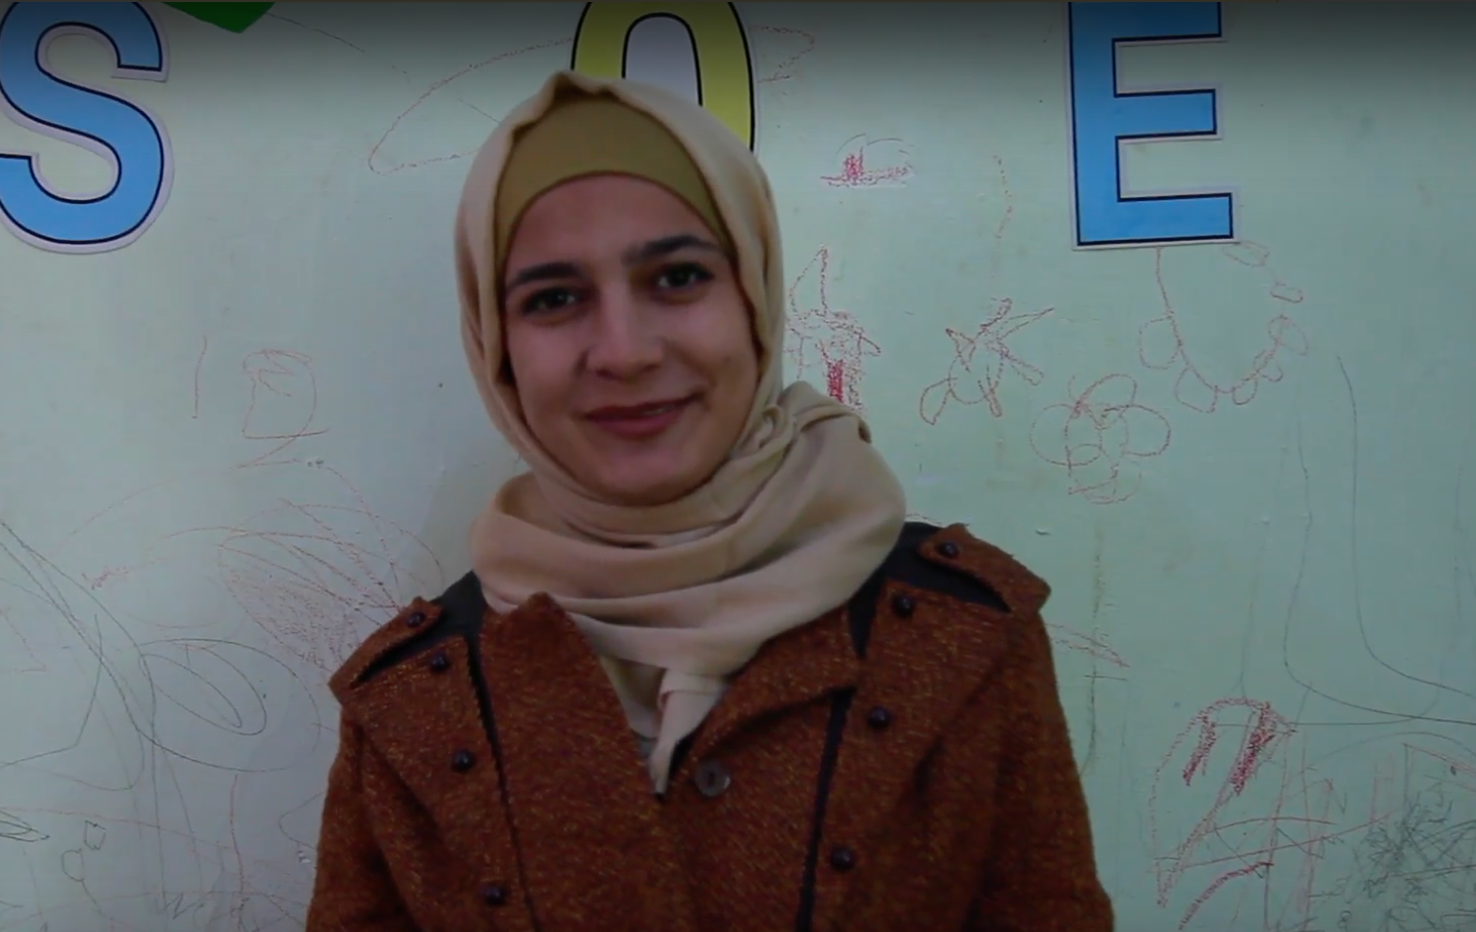 At the Azraq school in Jordan, The Syria Fund supports full time teachers who educate over 100 Syrian refugee children in Arabic, Math and Science. Miriam was hired as a teacher three years ago after fleeing Syria and is proud to bring knowledge to her 26 students every day.